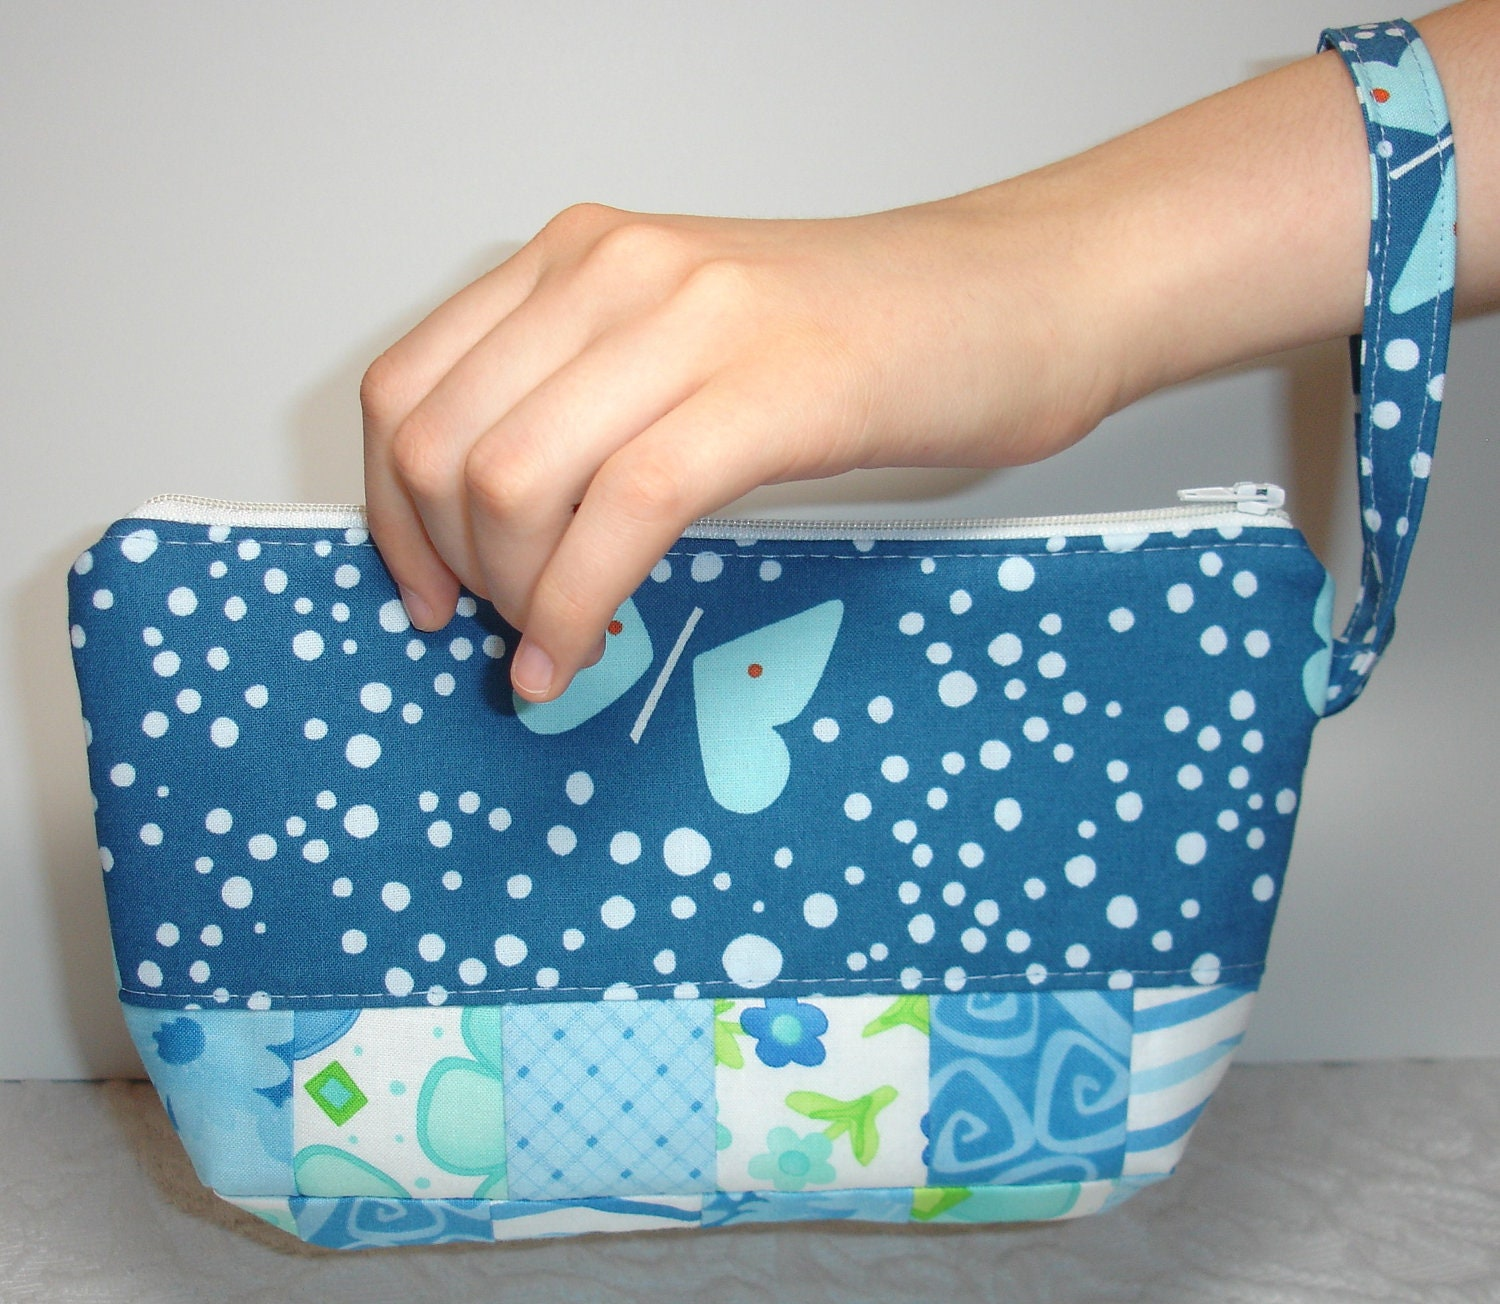 Wristlet Zippered Clutch Purse Bag Quilted - Light Blue, Navy, White - Butterfly - KeriQuilts